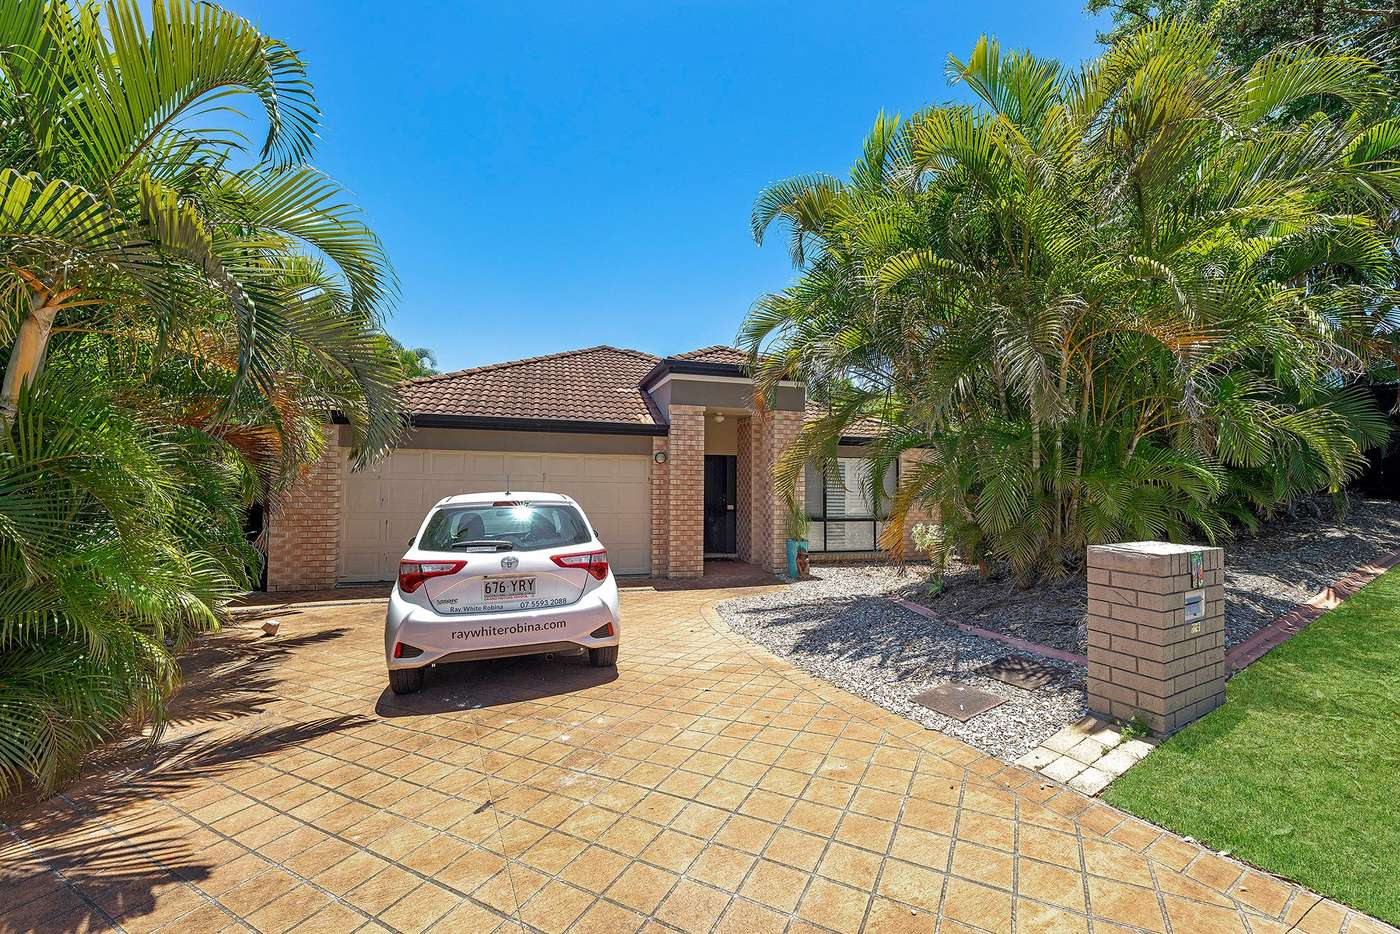 Main view of Homely house listing, 36 Huntingdale Crescent, Robina QLD 4226